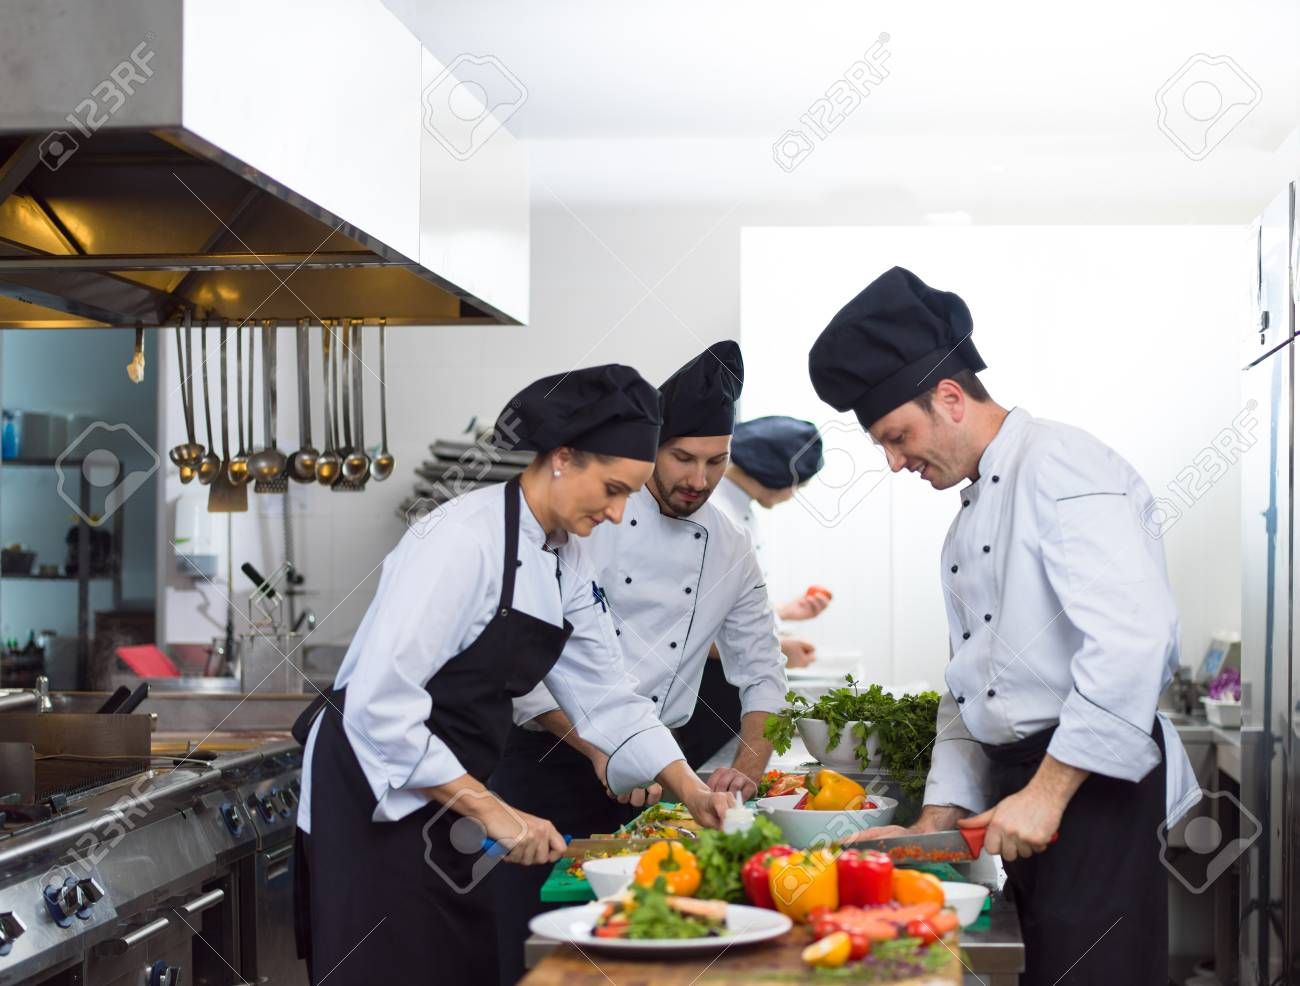 Professional team cooks and chefs preparing meals at busy hotel or restaurant kitchen - 101426840